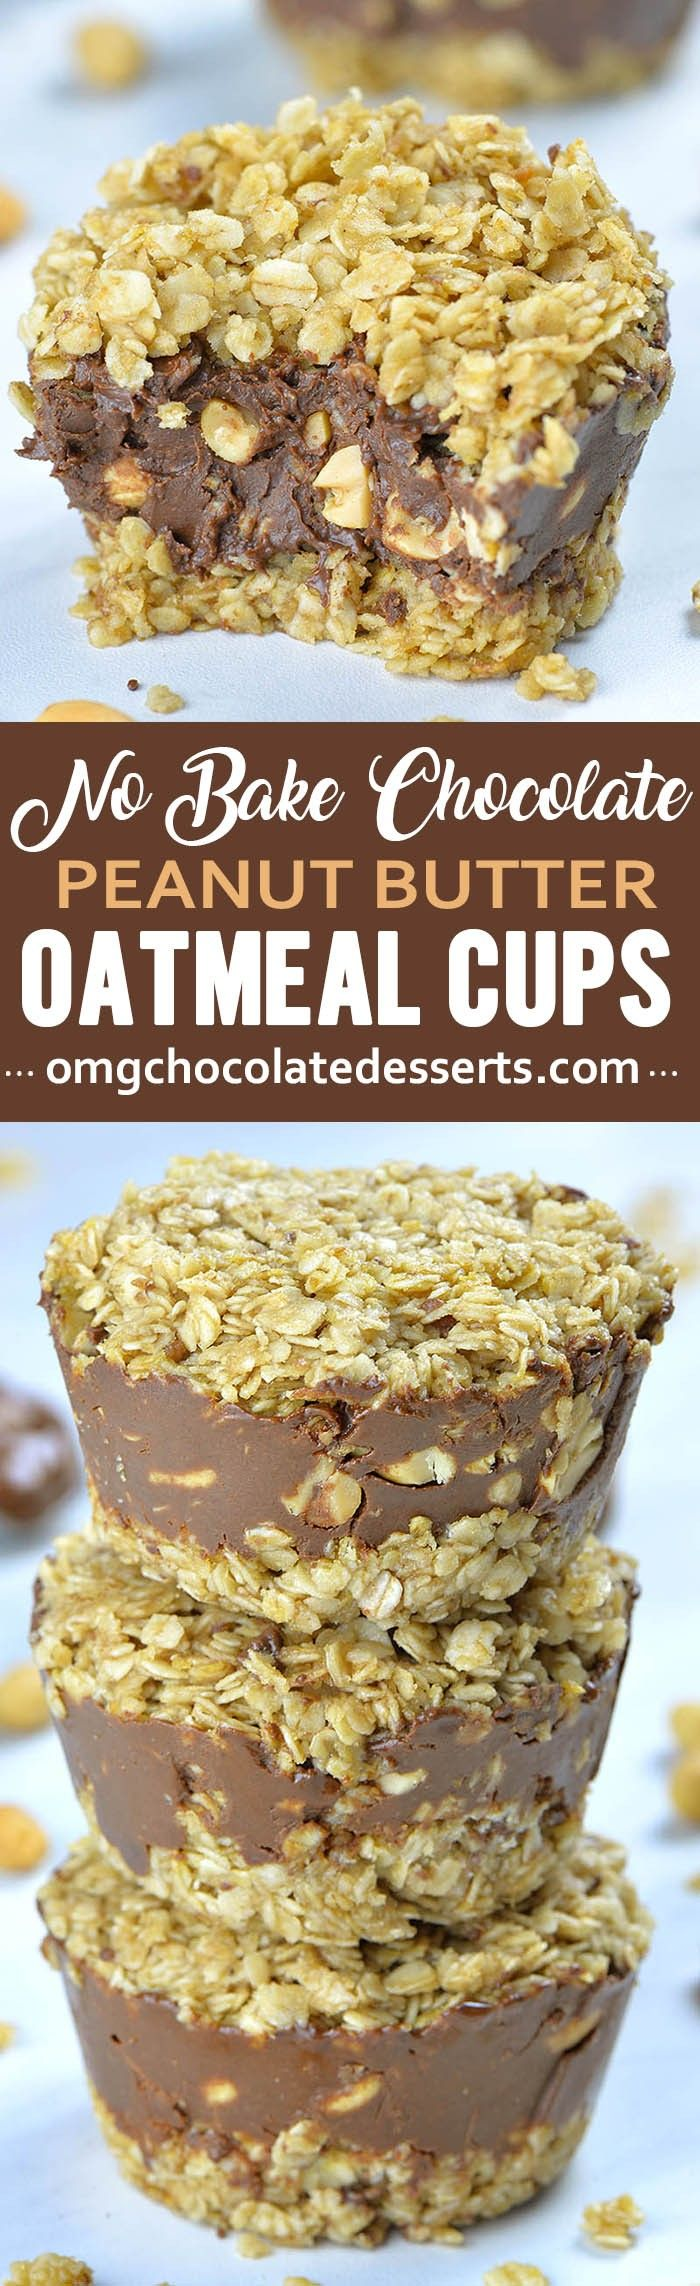 No-Bake Chocolate Peanut Butter Oatmeal Cups No-Bake Chocolate Peanut Butter Oatmeal Cups food blog with yummy and easy recipesNo-Bake Chocolate Peanut Butter Oatmeal CupsNo-Bake Chocolate Peanut Butter Oatmeal Cups are the perfec